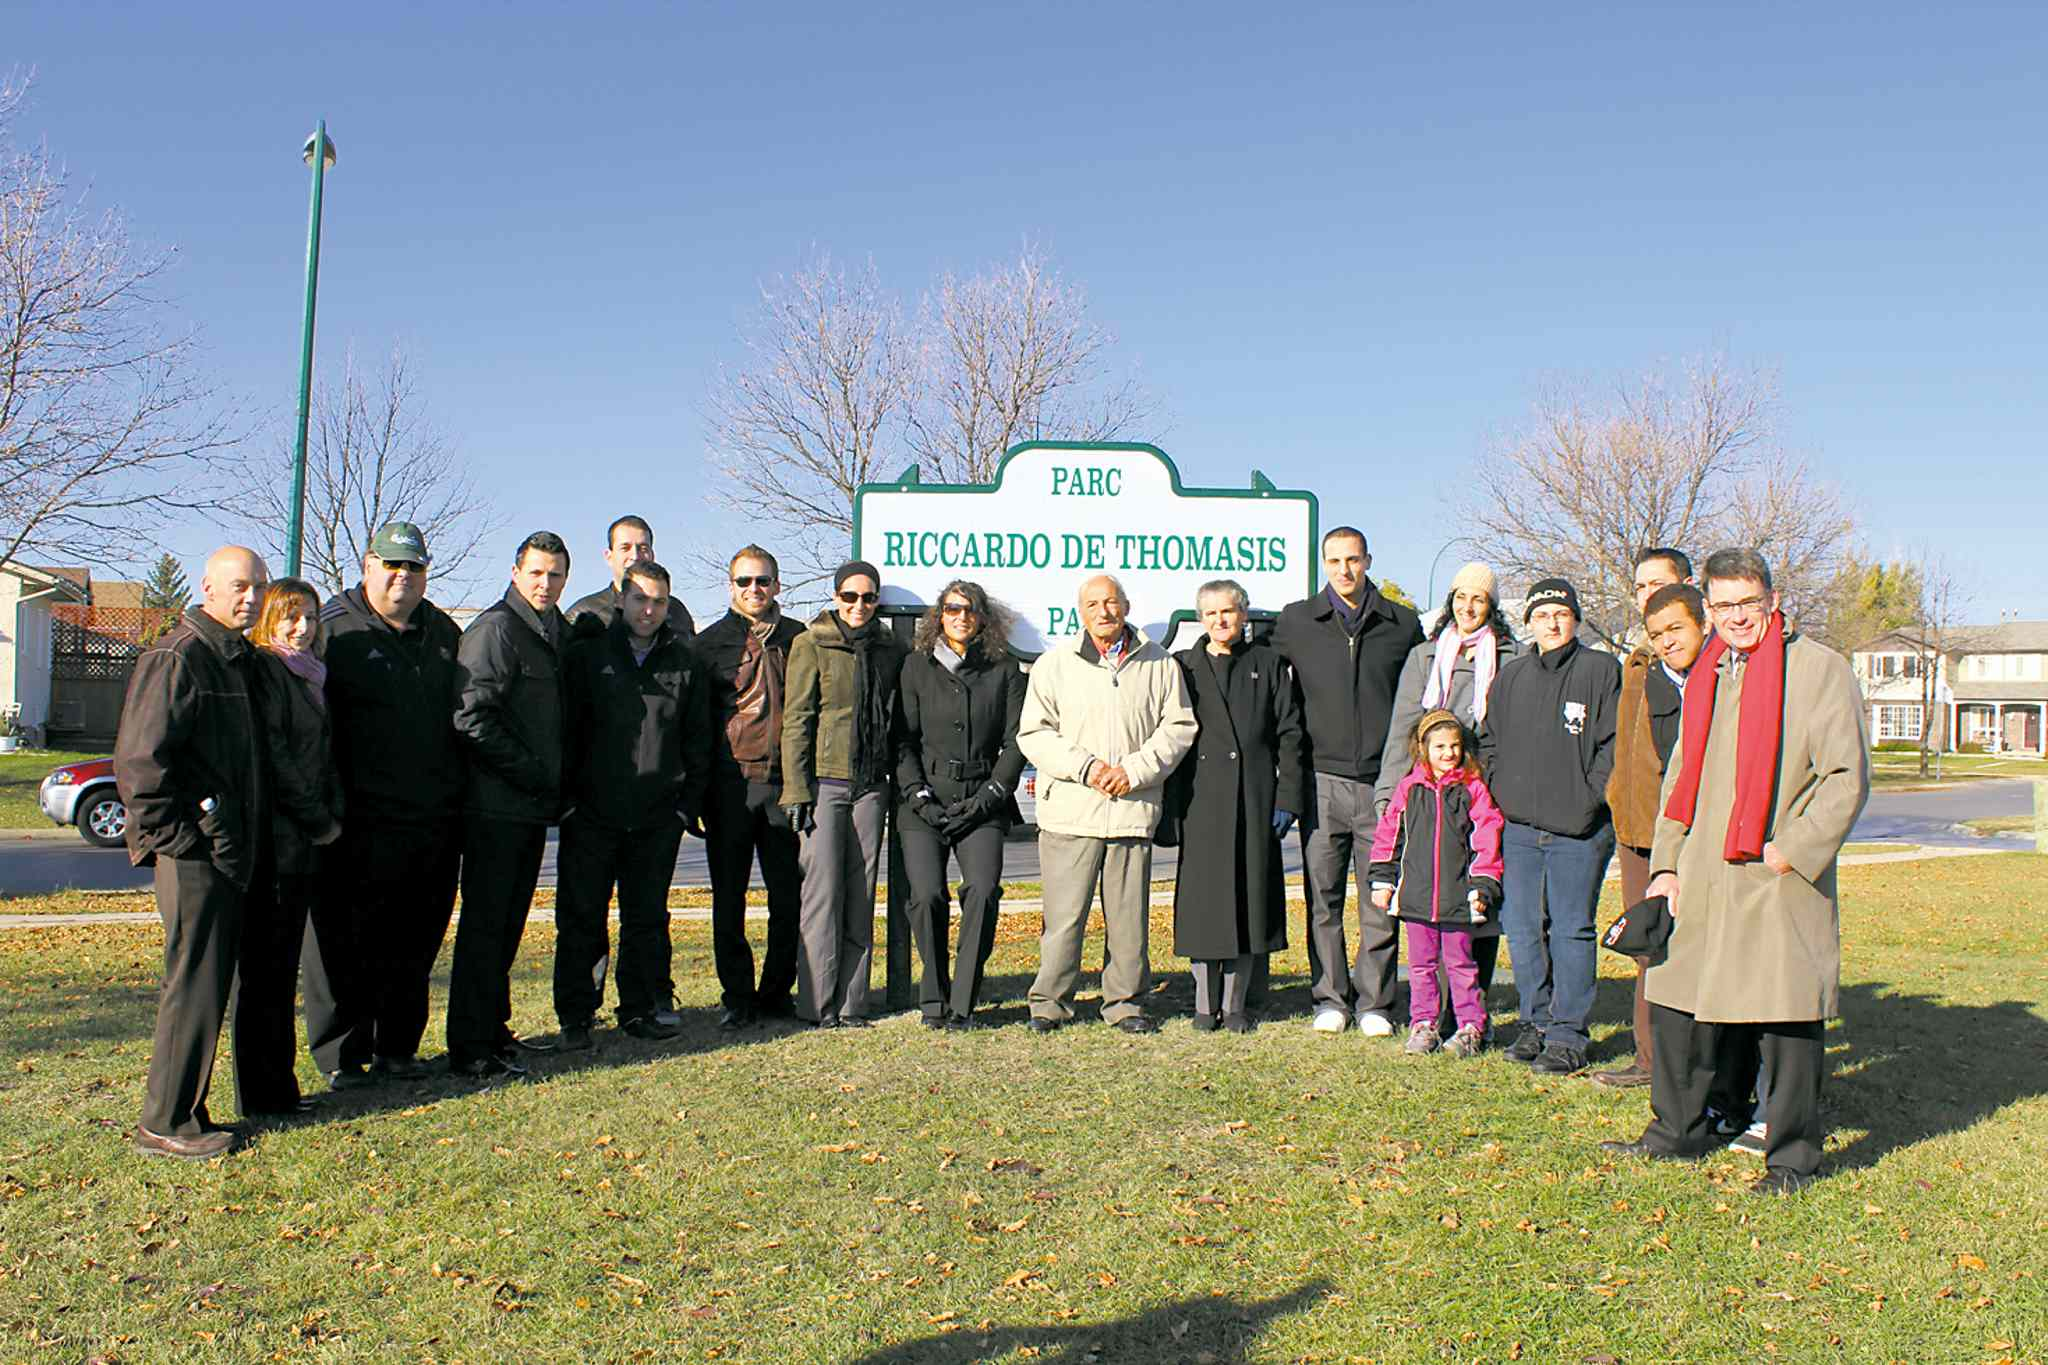 Family, friends and admirers of local soccer player, coach and mentor Riccardo De Thomasis gathered recently at an event to celebrate the renaming of Ashworth Park in his name.